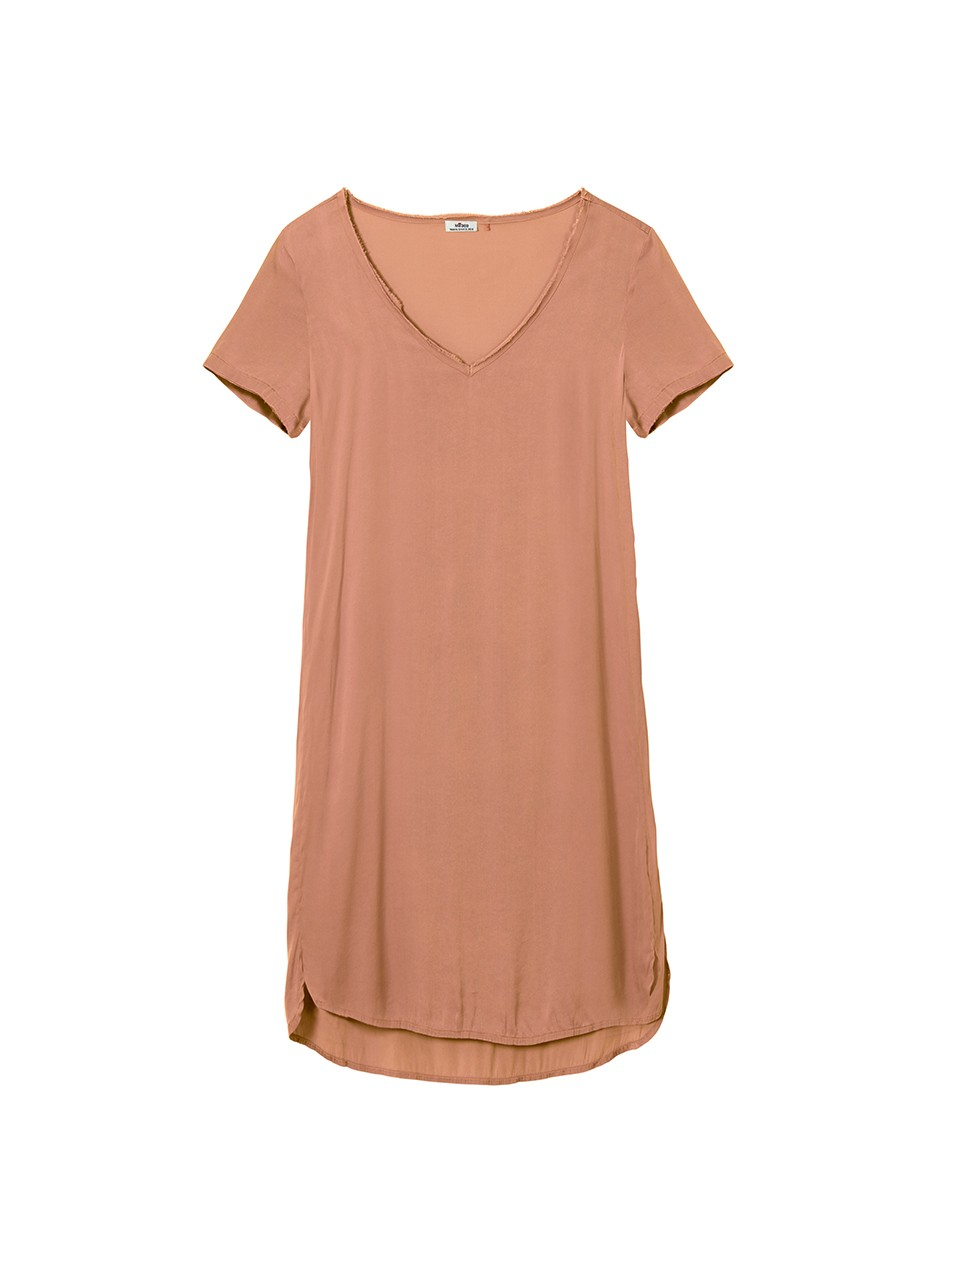 Courteney V-Neck Tshirt Dress